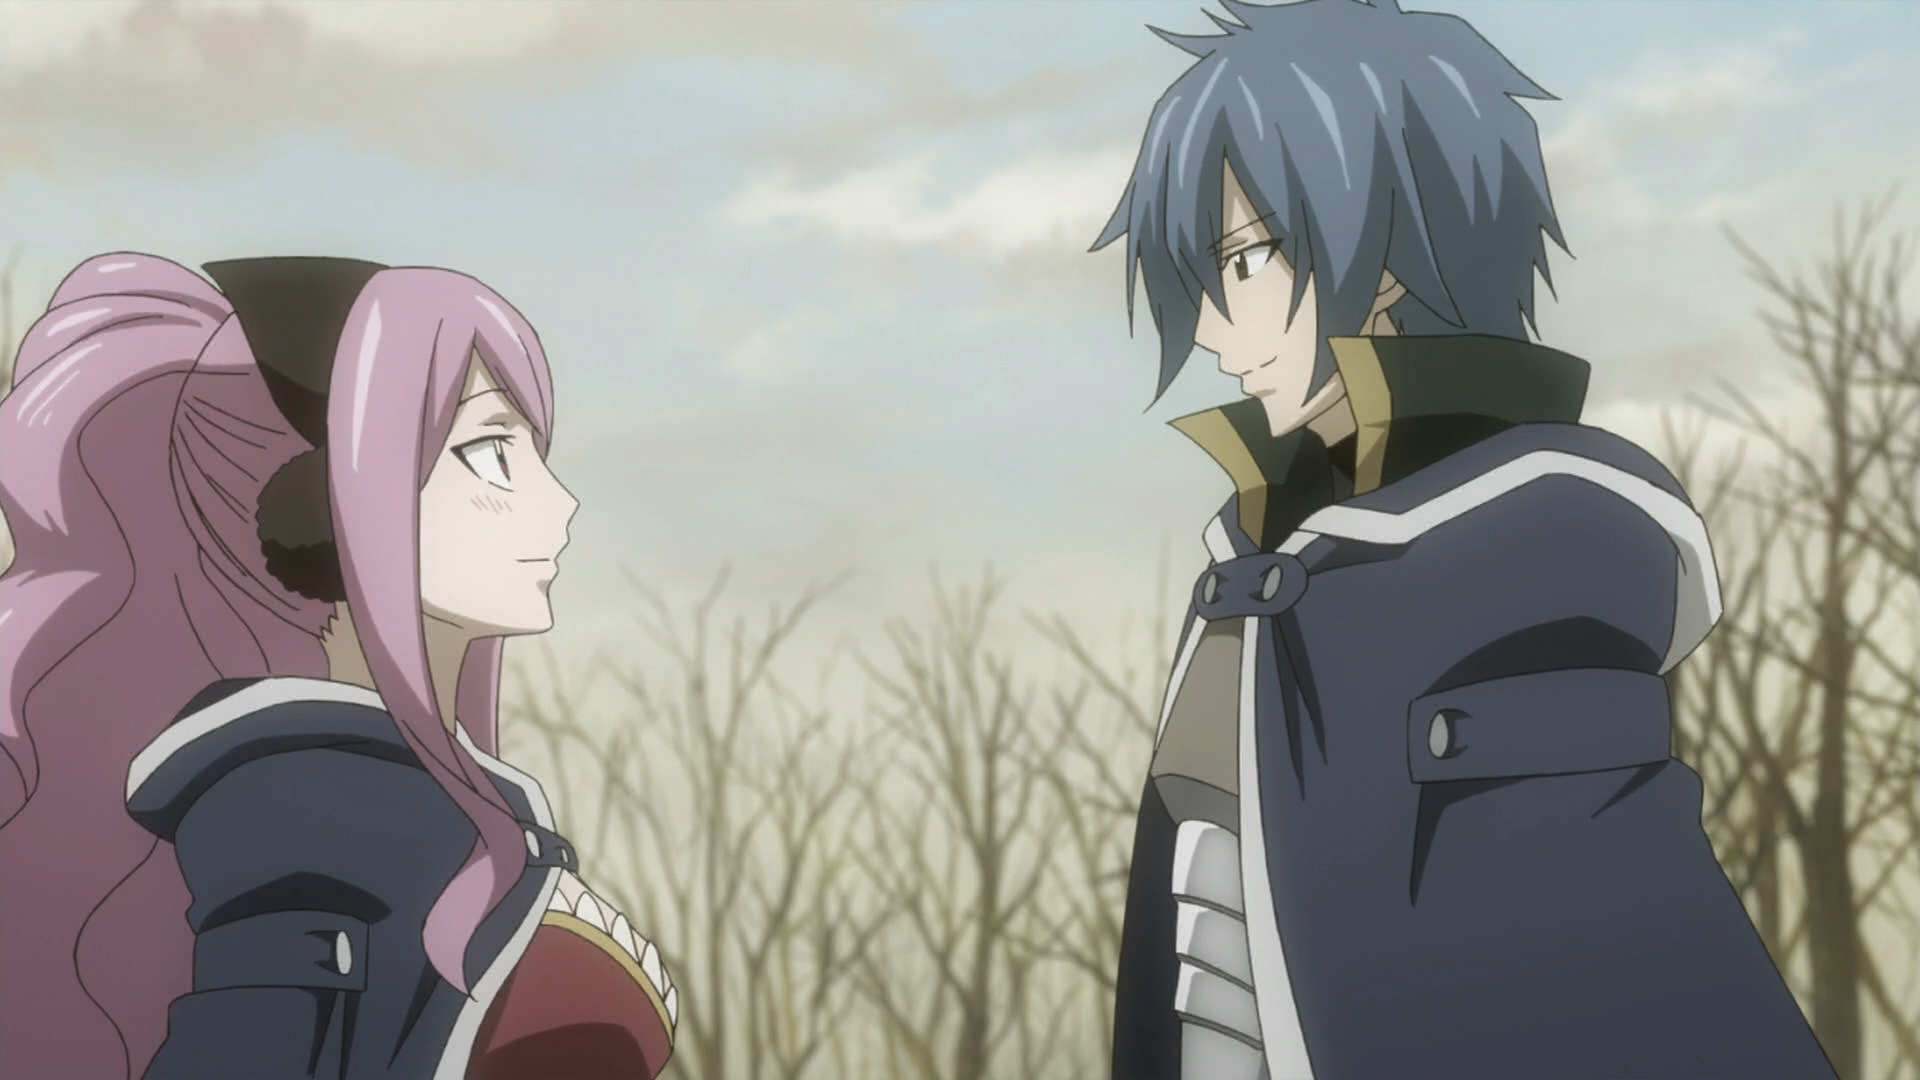 [HorribleSubs] Fairy Tail S2 - 71 [1080p]_001_29483